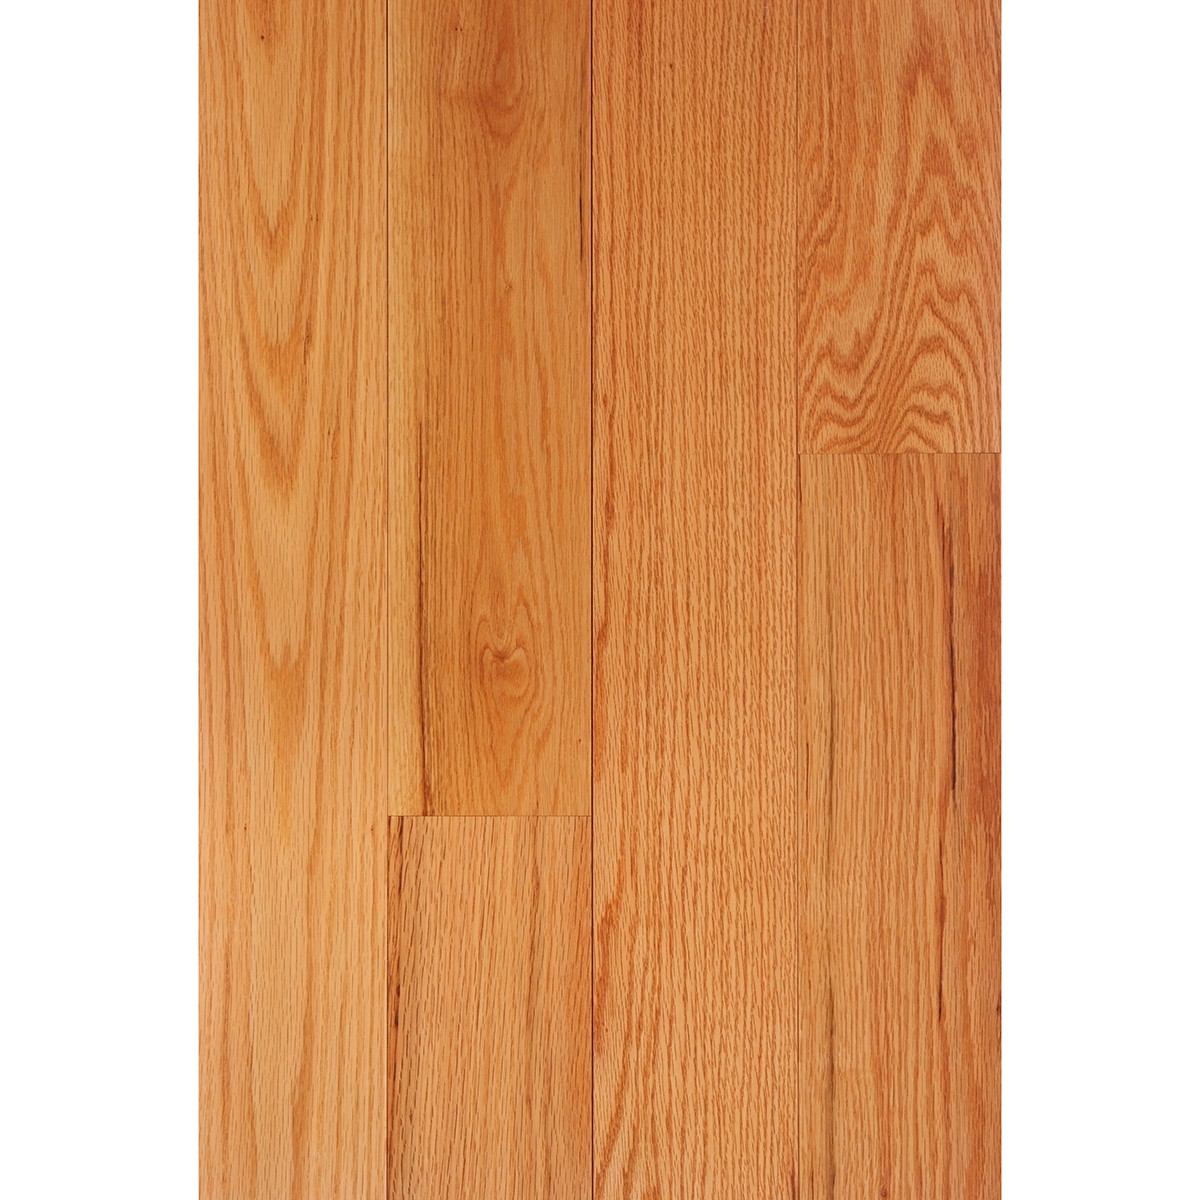 grades of white oak hardwood flooring of red oak 3 4 x 5 select grade flooring with regard to other items in this category